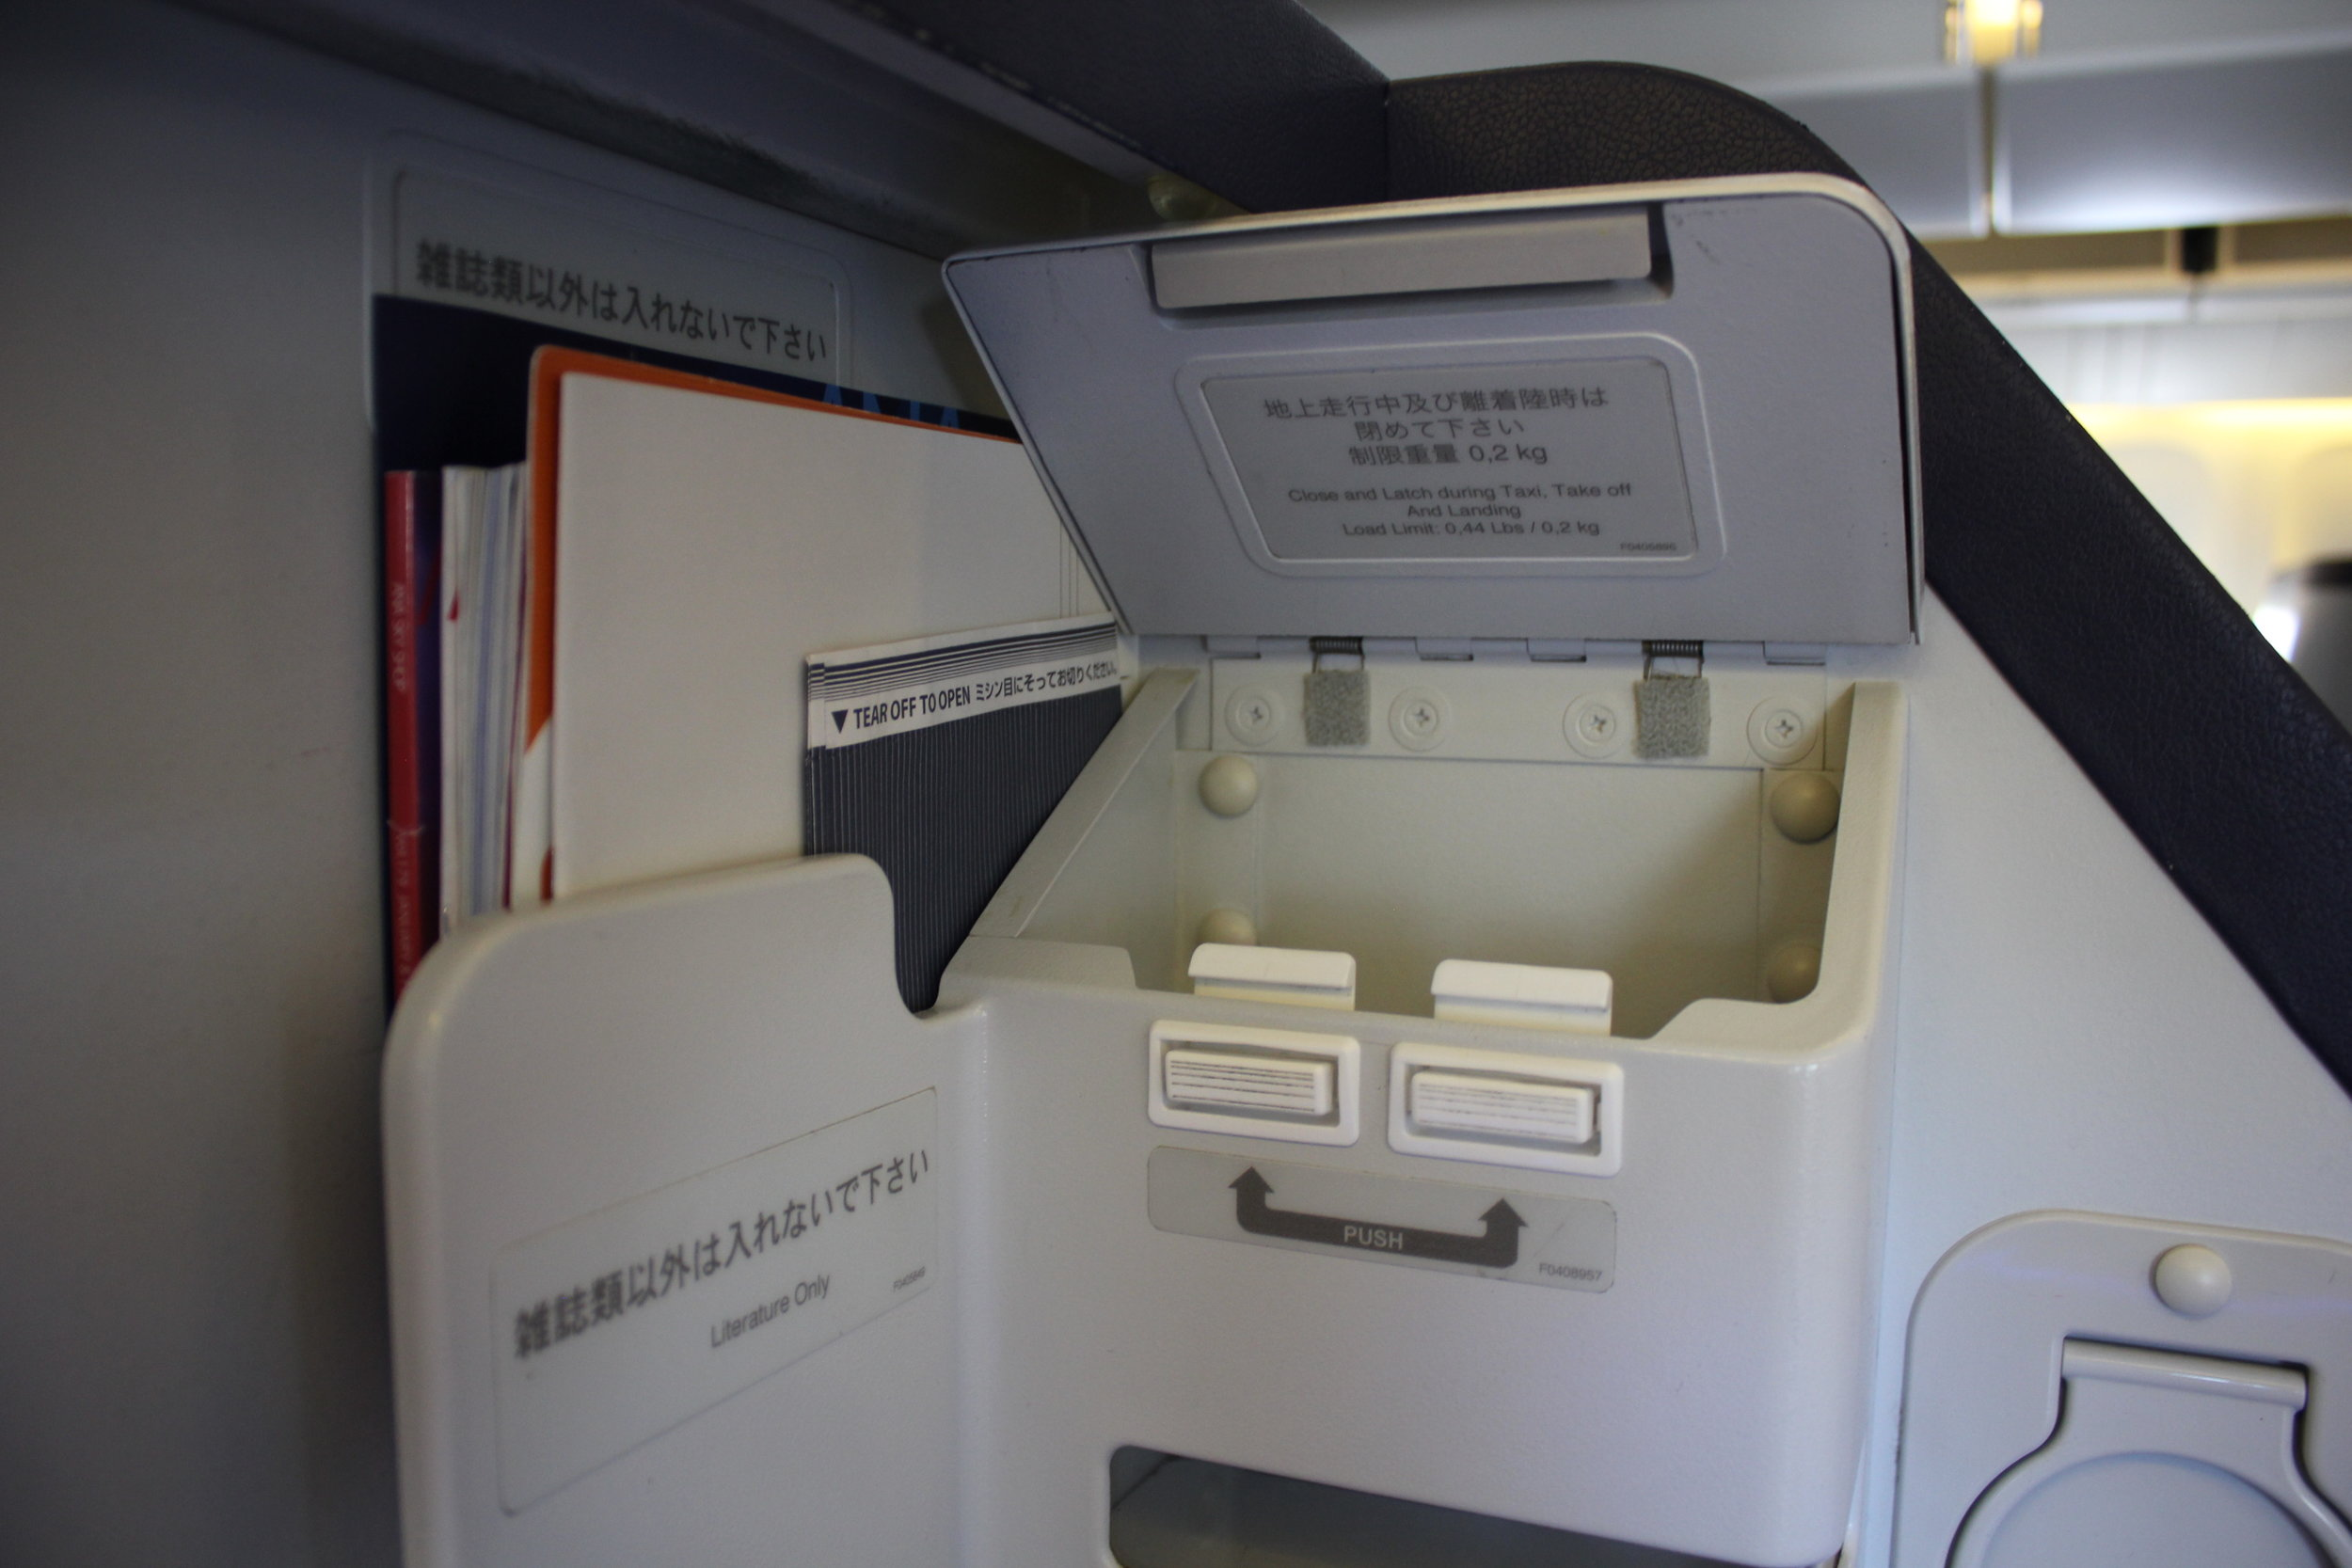 ANA 777 business class – Storage compartment